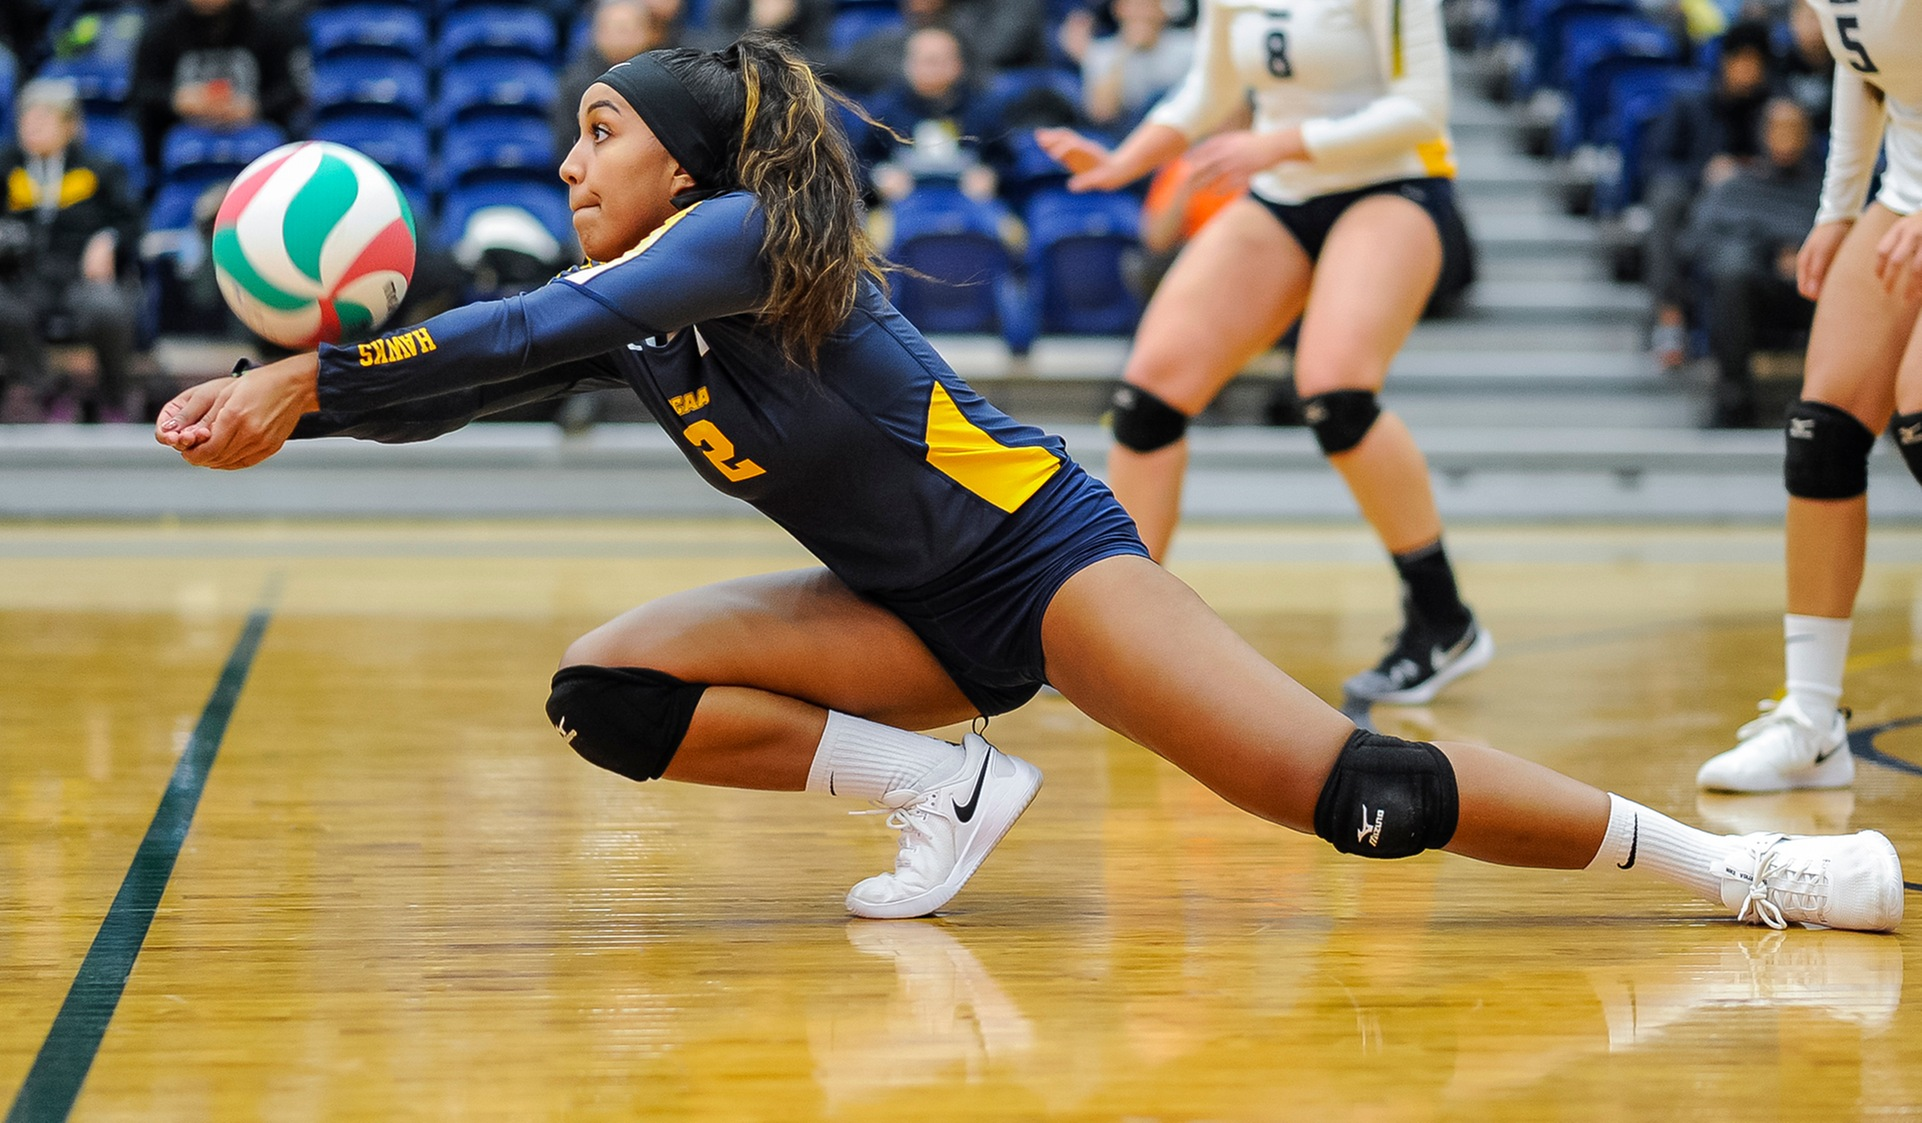 HAWKS SOAR TO START SECOND HALF WITH 3-0 SWEEP OF SHERIDAN